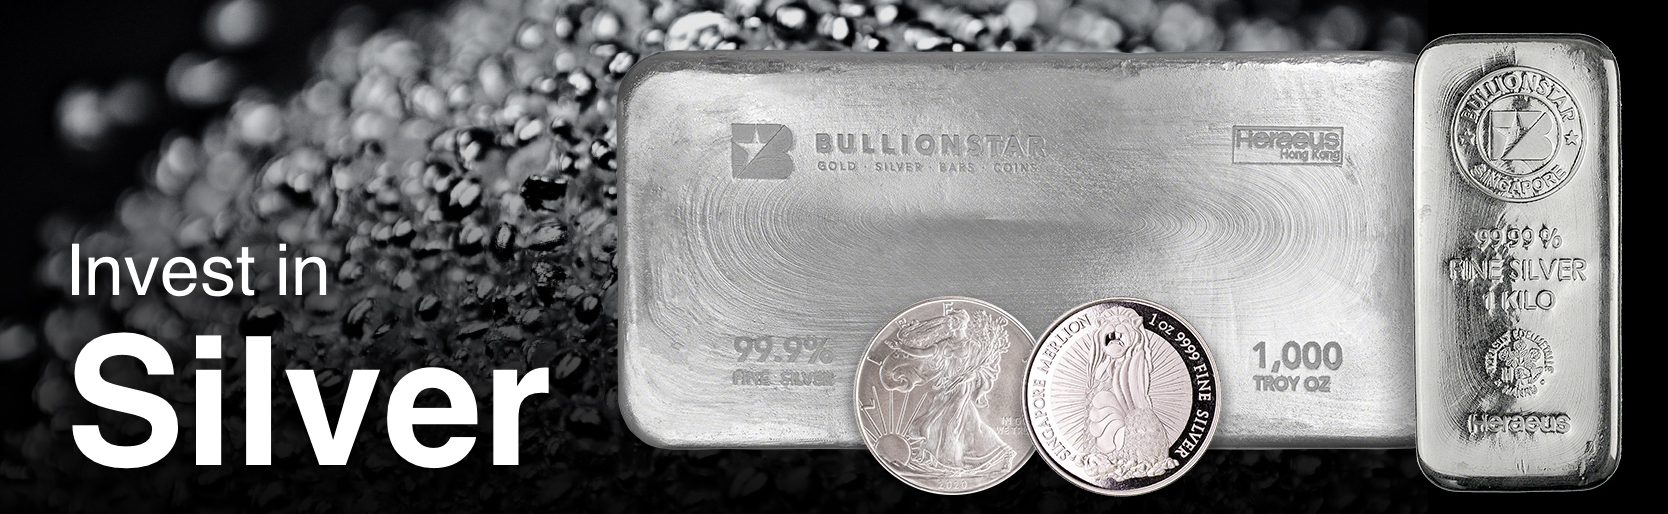 Why Invest in Silver? - BullionStar Singapore